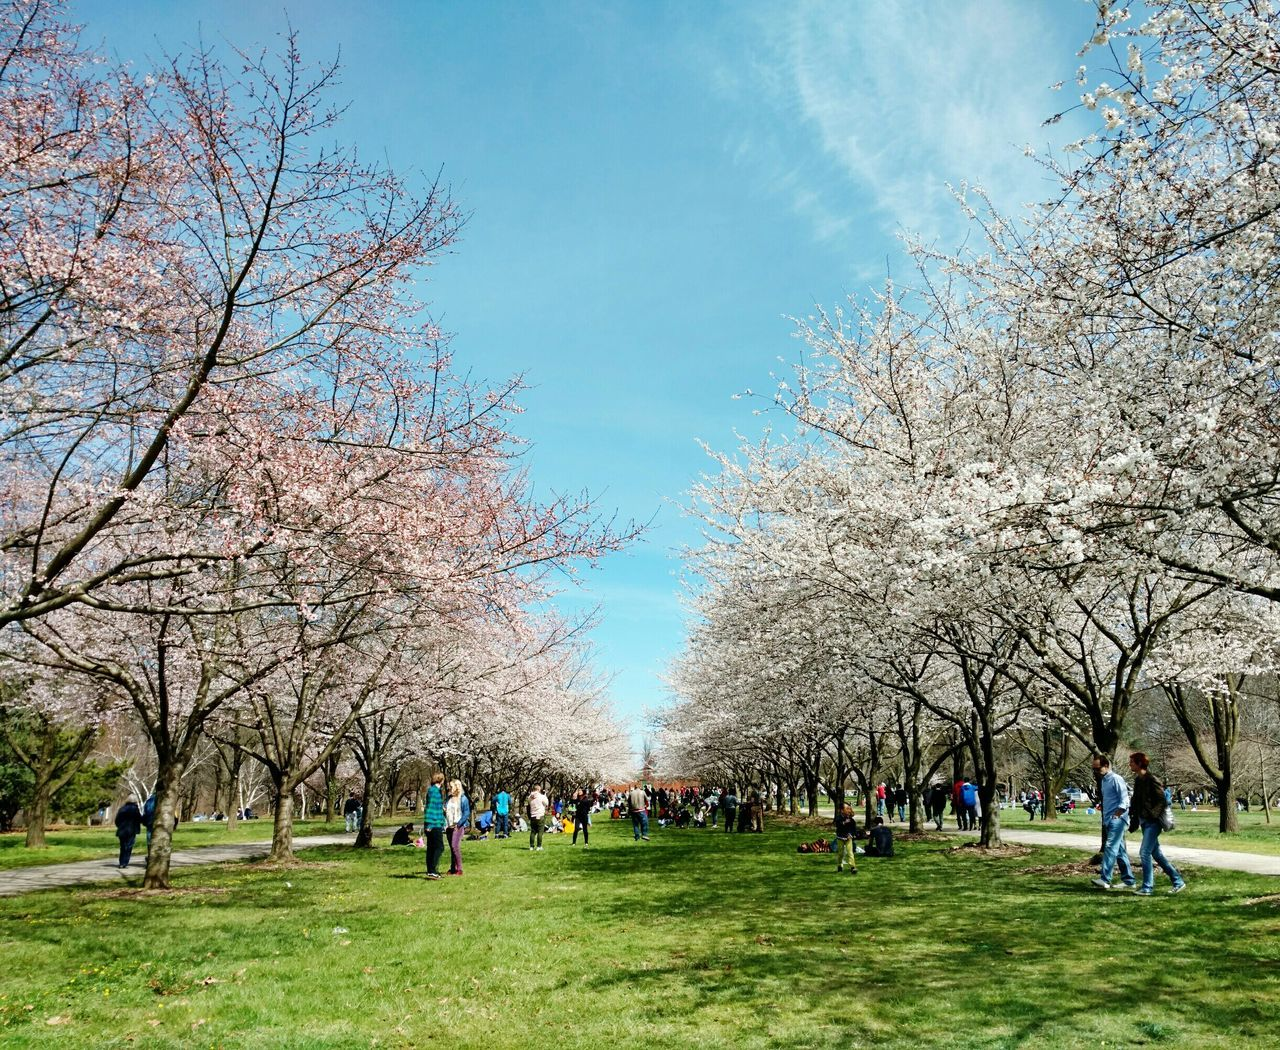 Spring is here!! Trees Cherryblossoms Cherryblossomtrees Pinktrees Whitetrees Pinkflowers Whiteflowers Japanesecherryblossom Spring Flowers Flowertree Flowertrees Beauty In Nature Withpeople